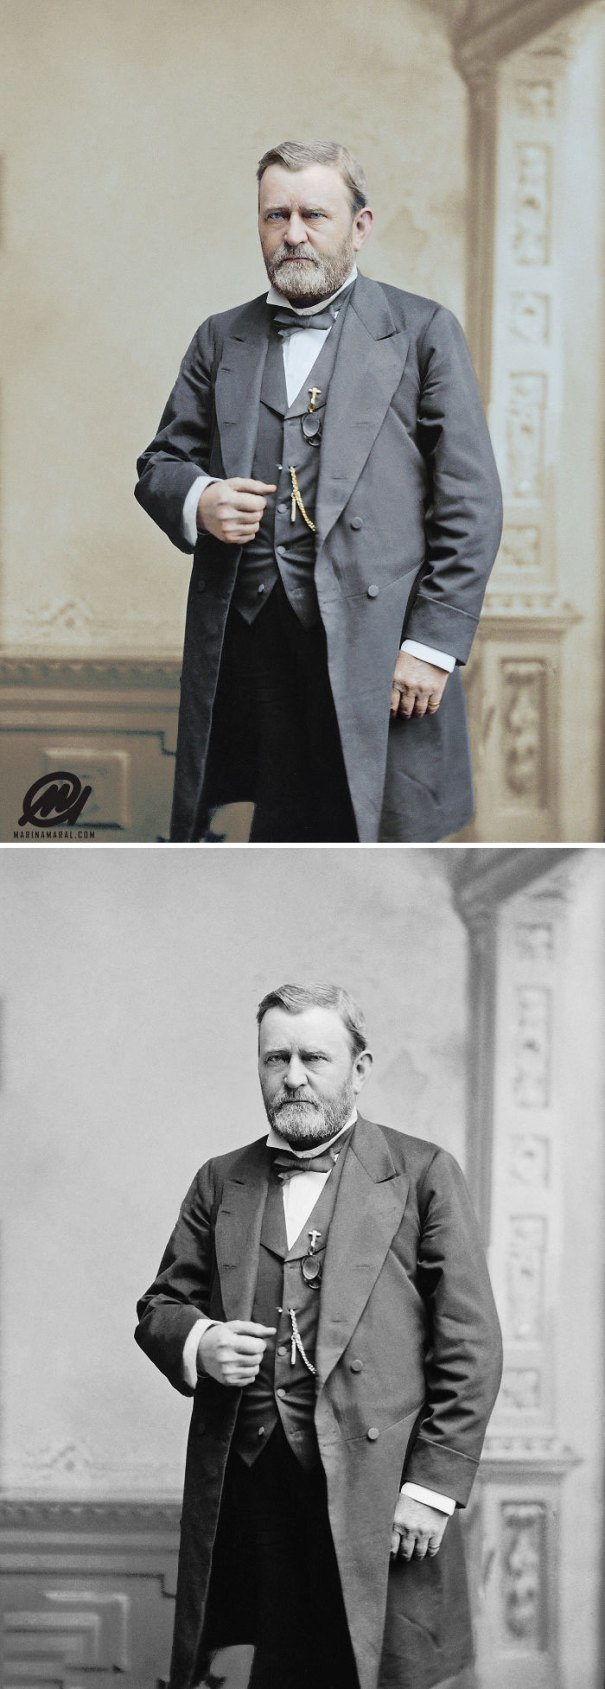 5b6d3b91639f7-colorized-historic-photos-marina-amaral-159-5b6ad45edb47c__700 This Artist Colorizes Old Black & White Photos, And They Will Change The Way People Imagine History Photography Random